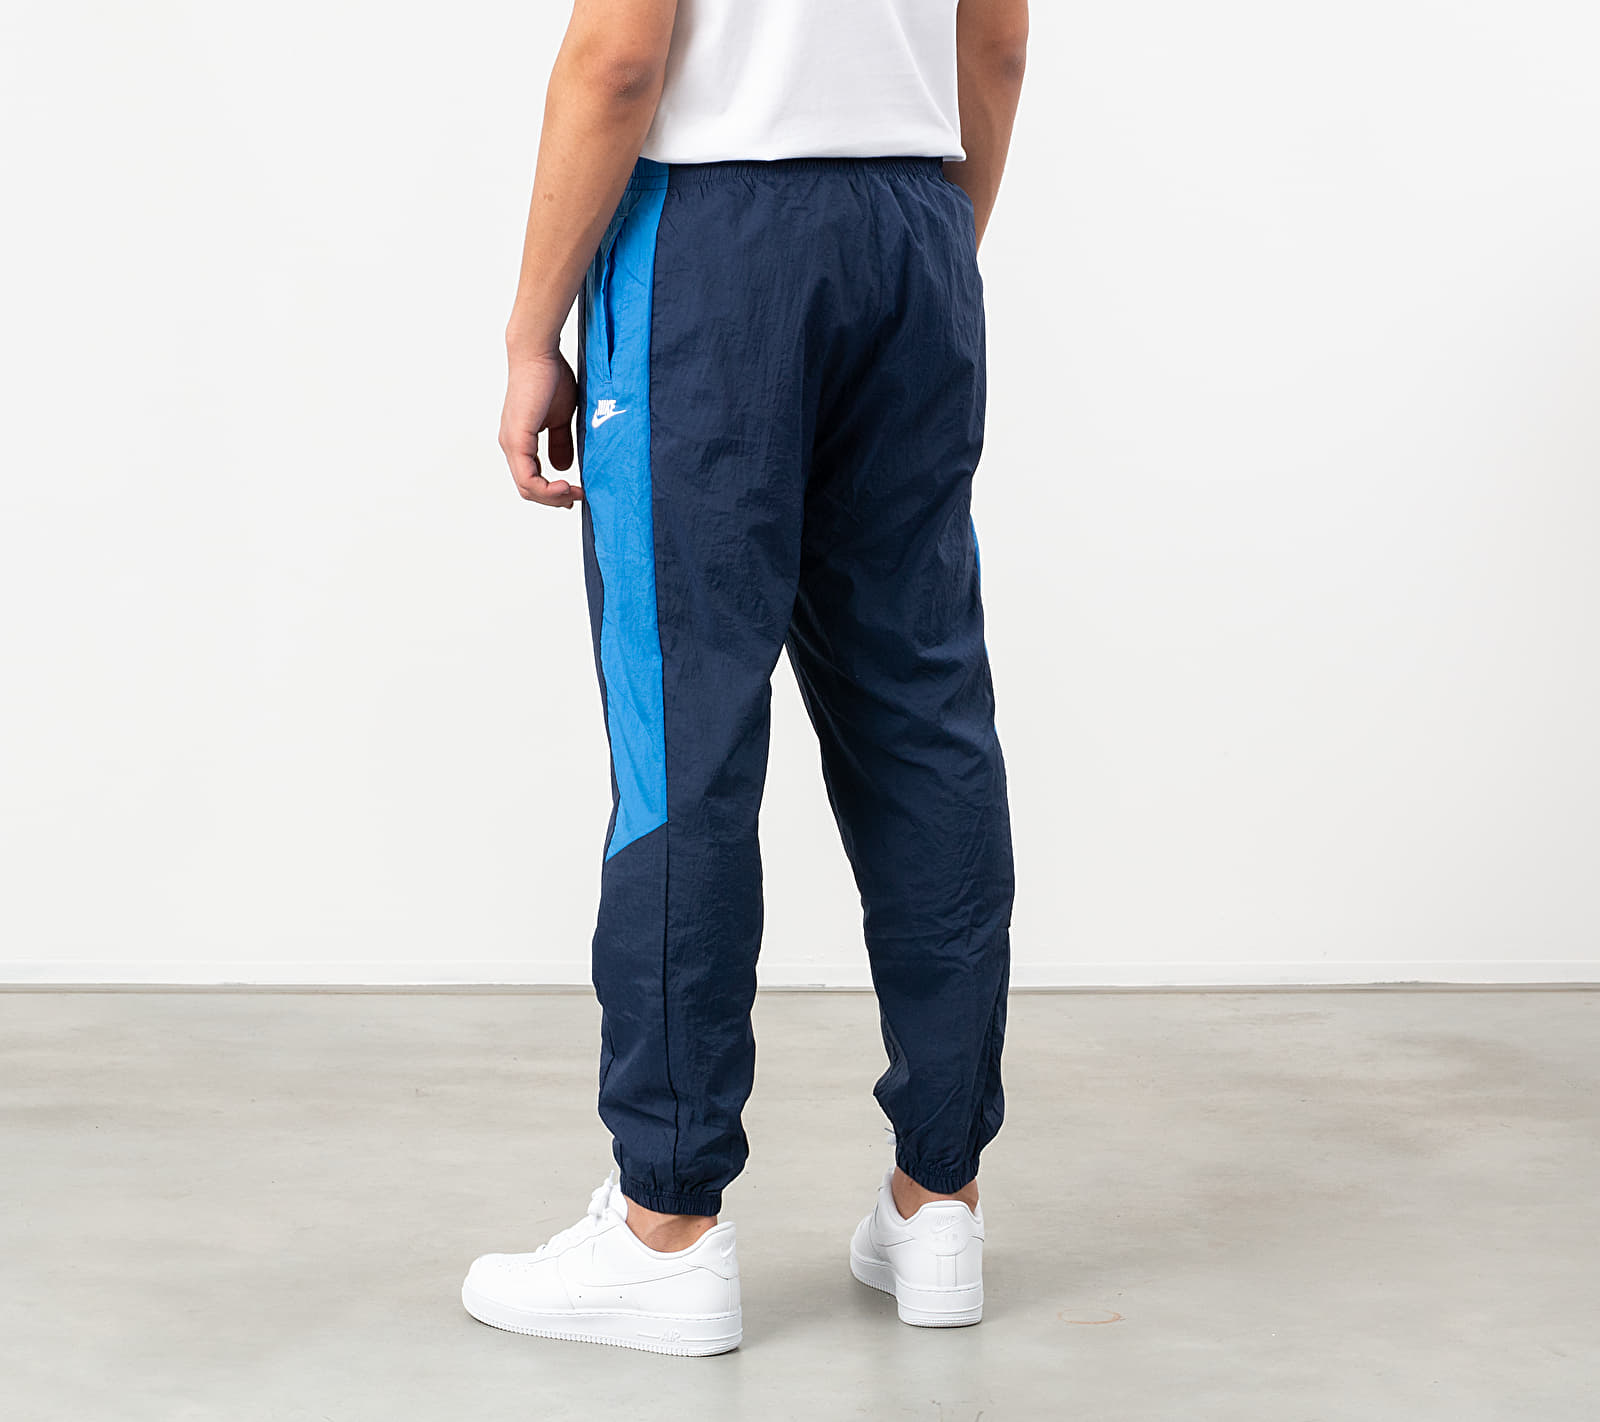 Nike Sportswear Woven CF CB Pants Midnight Navy/ Pacific Blue/ White